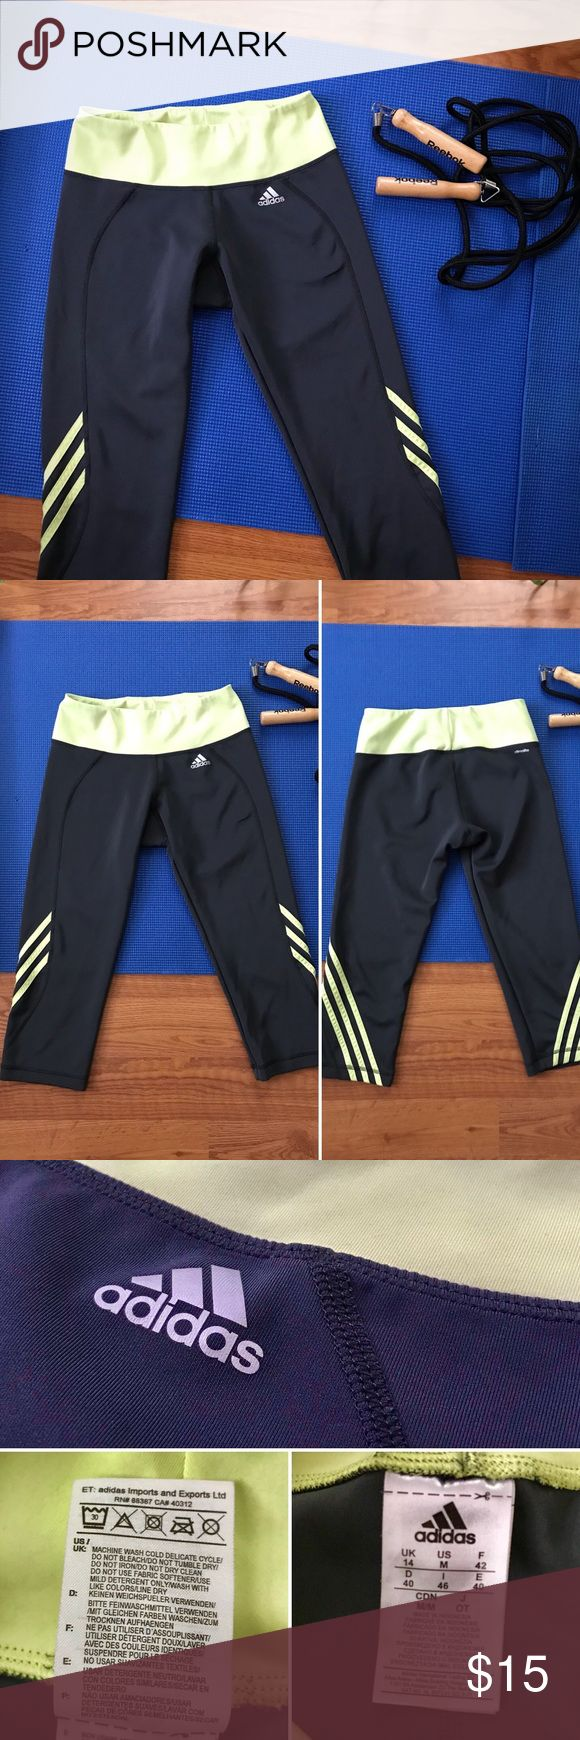 Adidas Gray & Lime Green Climalite Capri Leggings Adidas Capri Leggings:  • Climalite moisture-wicking material • Dark gray with bright lime accents • Polyester + Spandex blend • Condition: Like new! adidas Pants Leggings